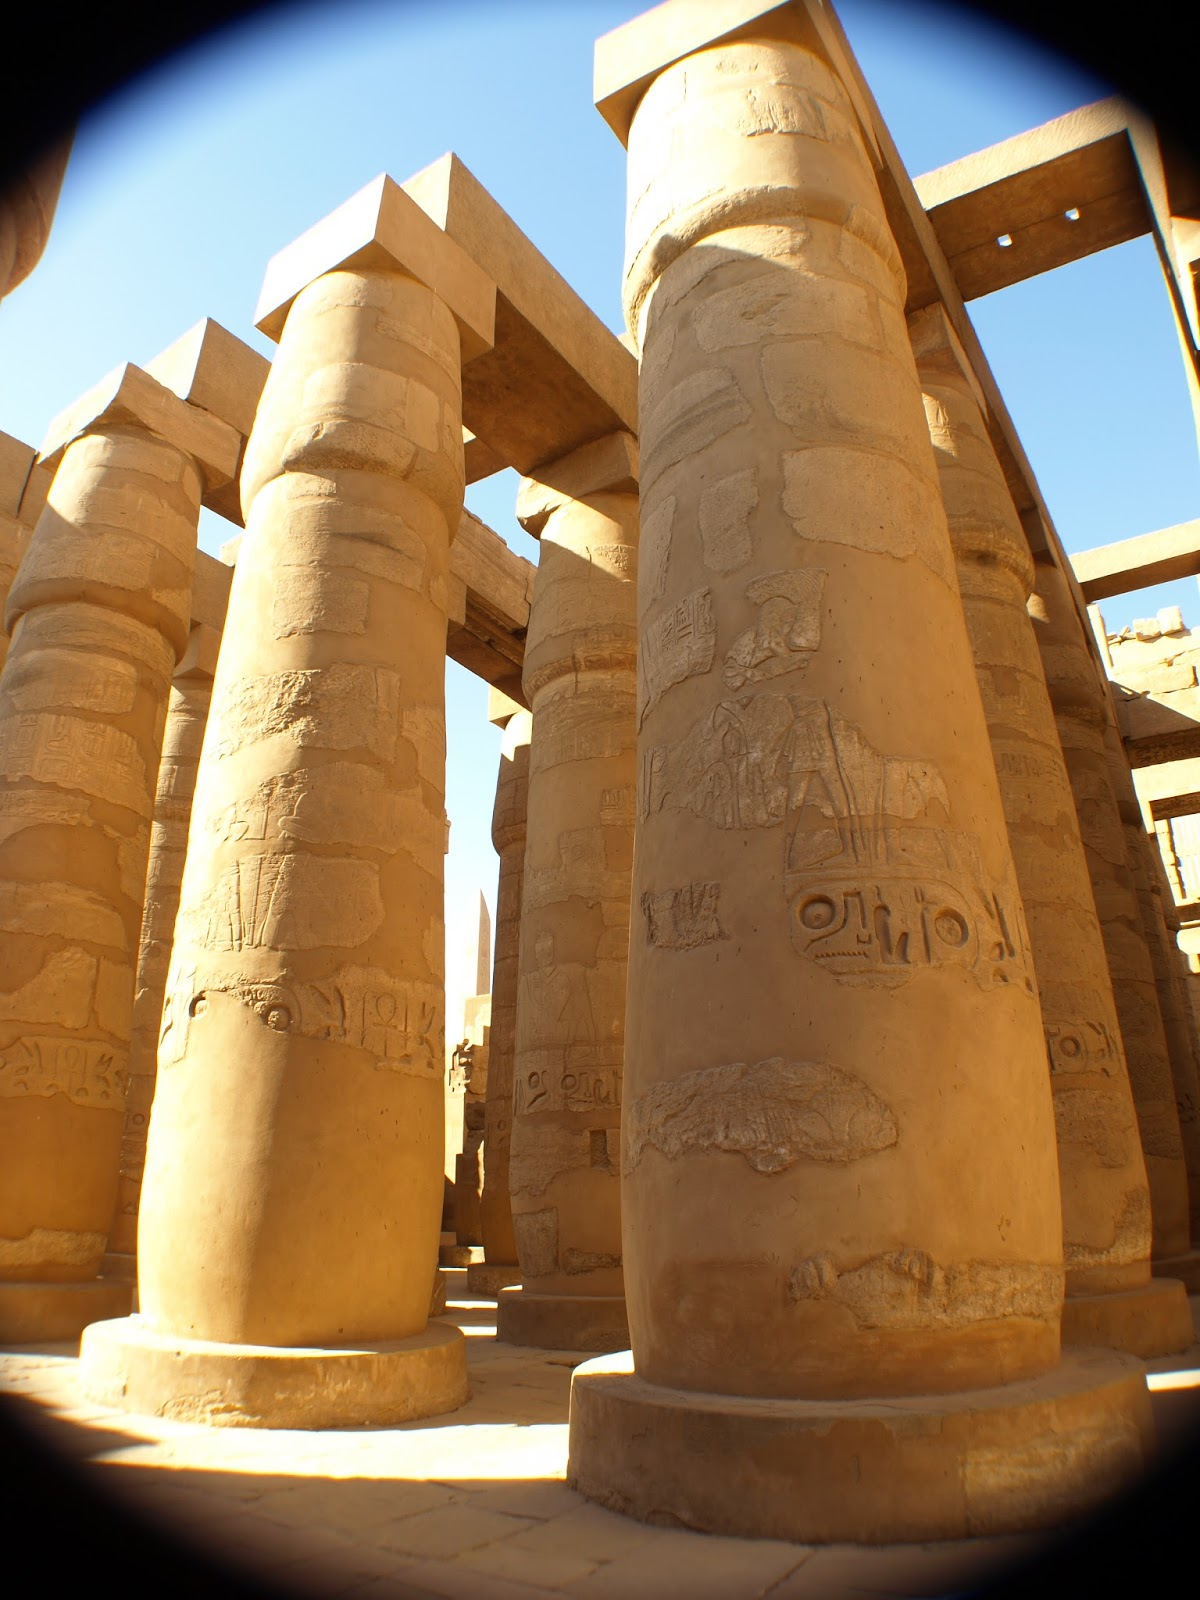 all inclusive, Thompson, crown prince, t4, Nile cruise, sailing down the Nile, The River Nile, Temples, Ancient Egypt, Tour, Pharaohs, Africa, Luxor, Thebes, Family Holiday, Temple of Queen Hatsheput, Gigantic Colossi of Memnon, The Valley of the Kings, King Tutankhamen, Temple of Luxor, Obelisk, statue of Ramses, Temple of Horus, Edfu, Temple of Karnak, hypostyle hall, Philae Temple, Egilica island, Aswan High Dam, Lake Nasser, camel, village,